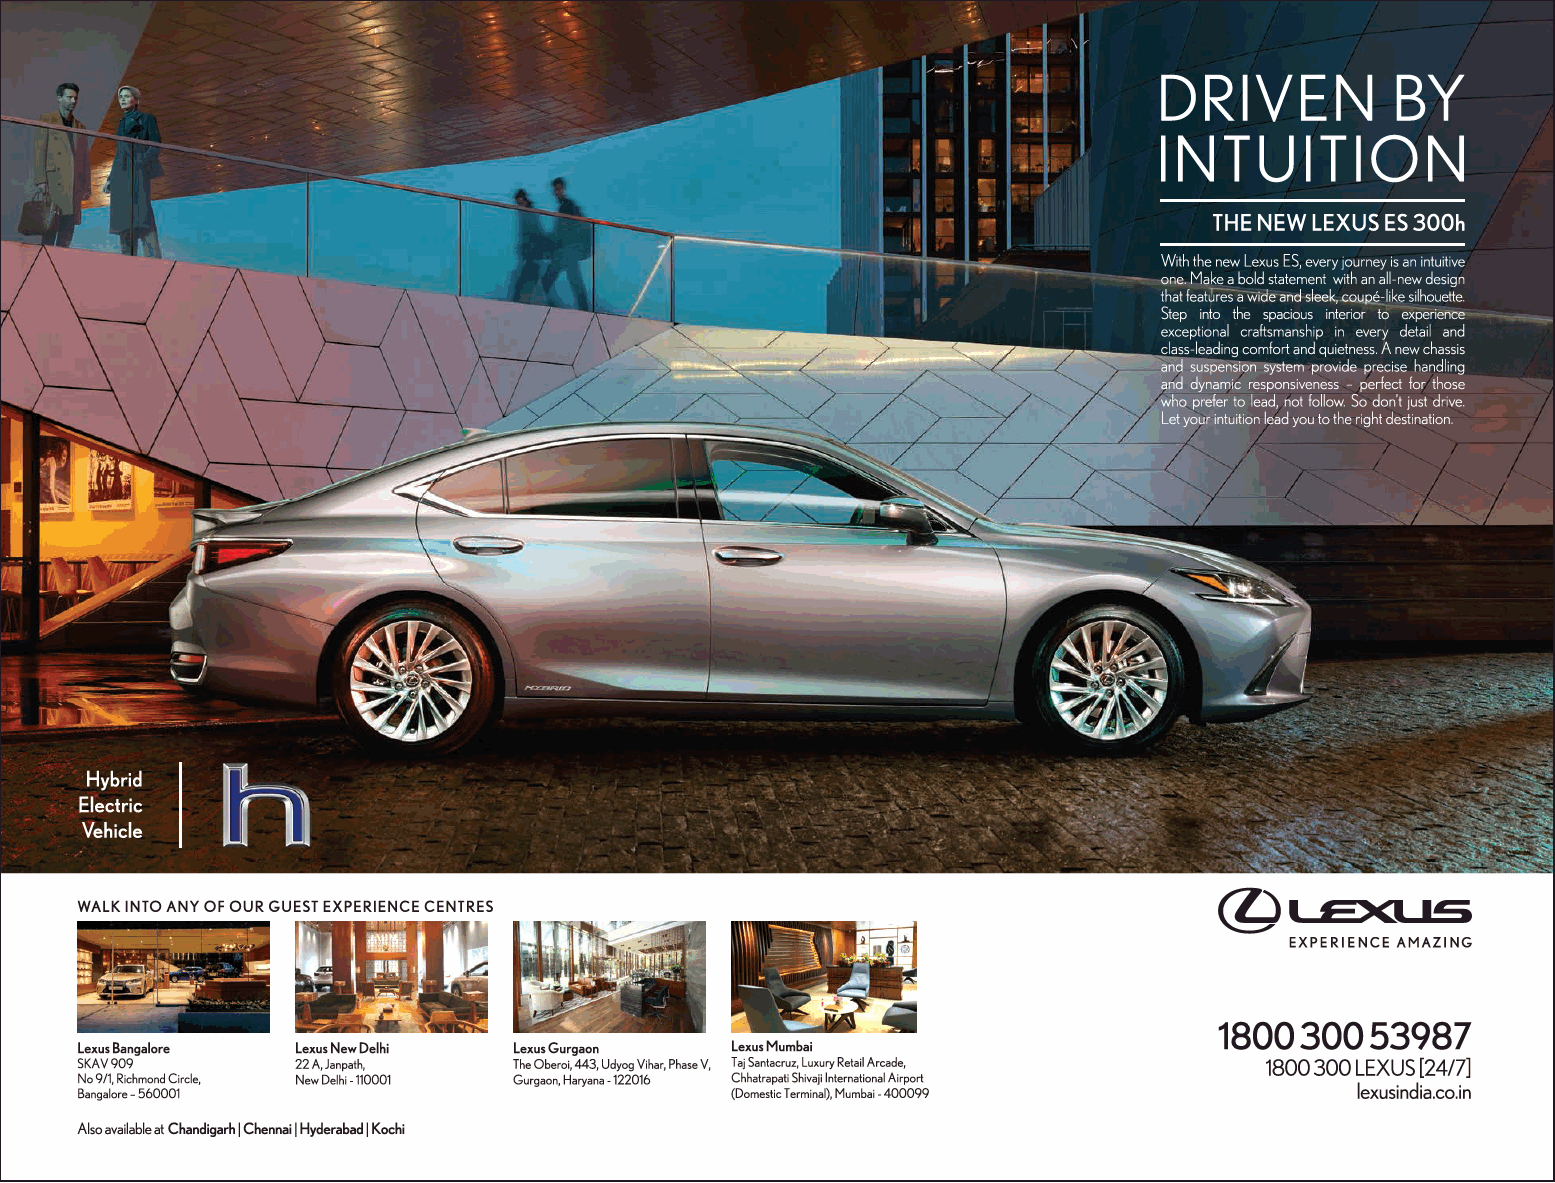 Lexus Car Hybrid Electric Vehicle Ad Times Of India Bangalore Check Out More Car Advertisement Collection At Https Www Advertgal Lexus Cars Hybrid Car Lexus